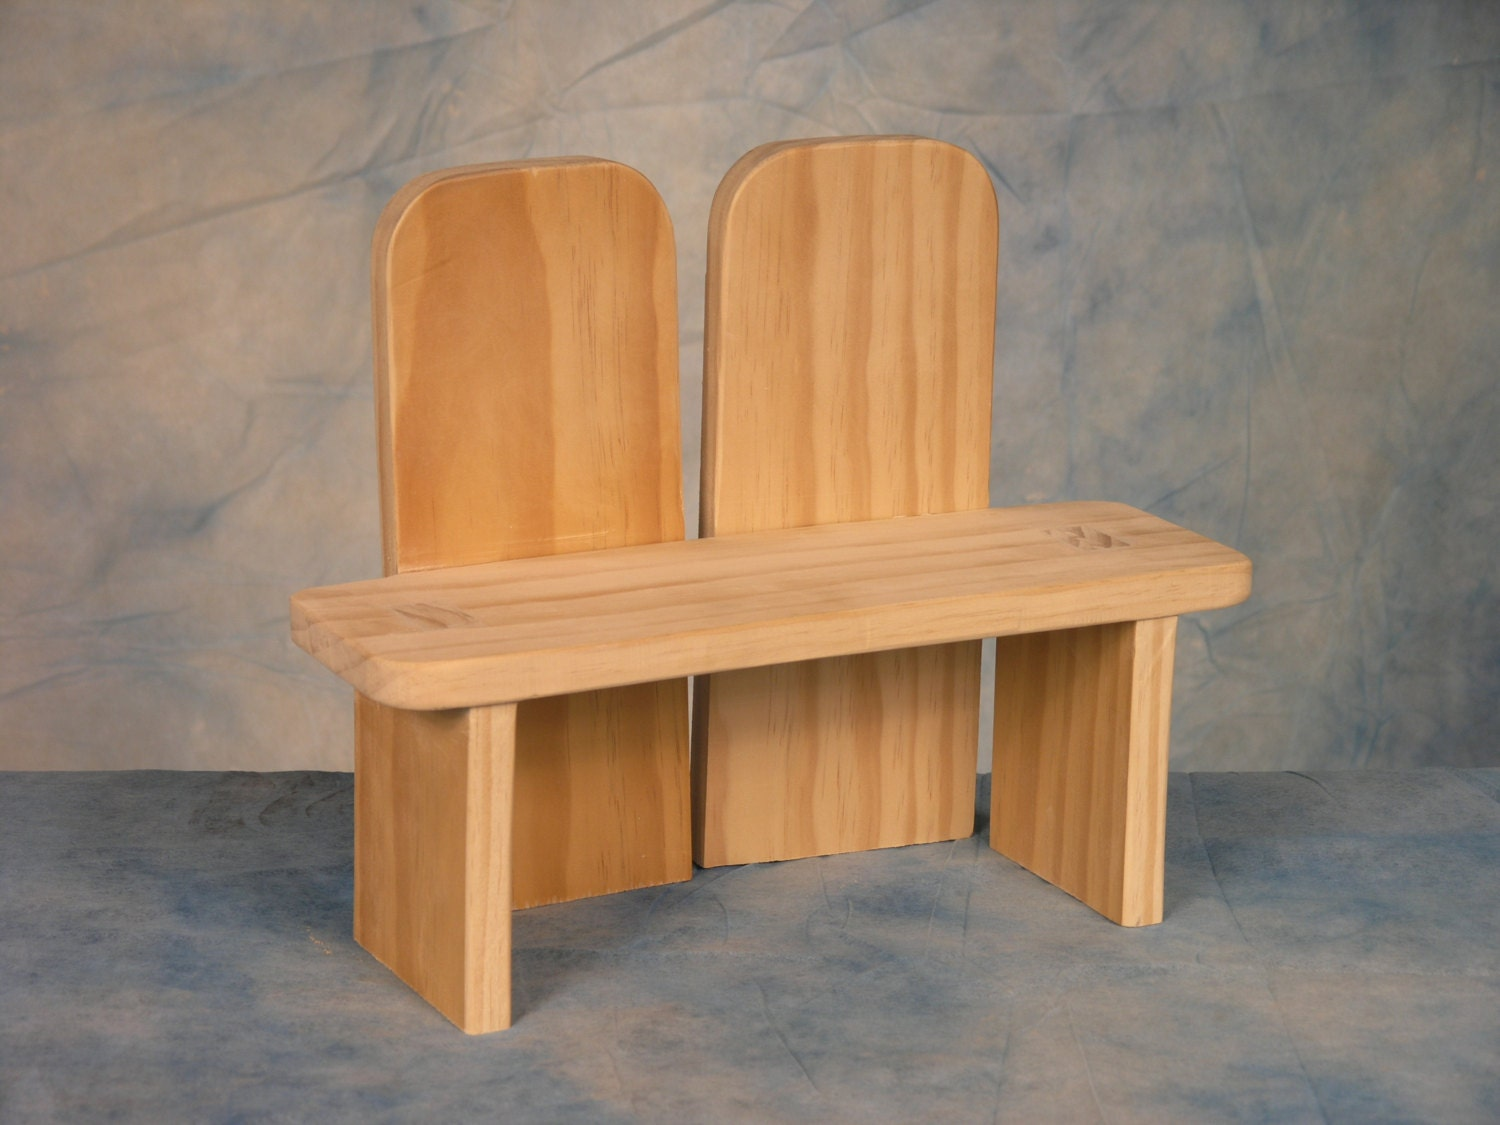 Natural Wooden Benches Partner Bench